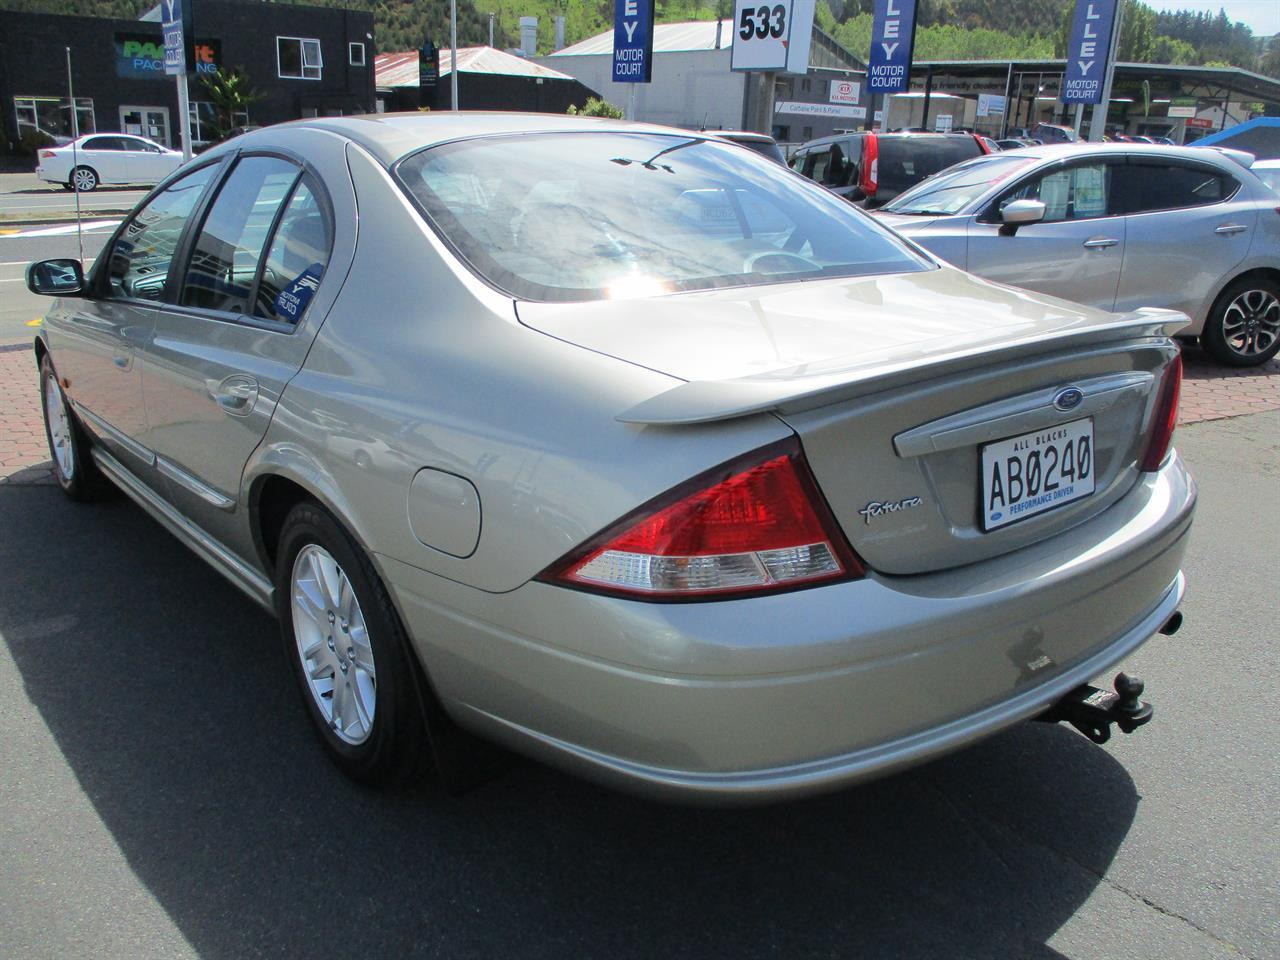 image-6, 2001 Ford Falcon AUII HERITAGE SERIES at Dunedin